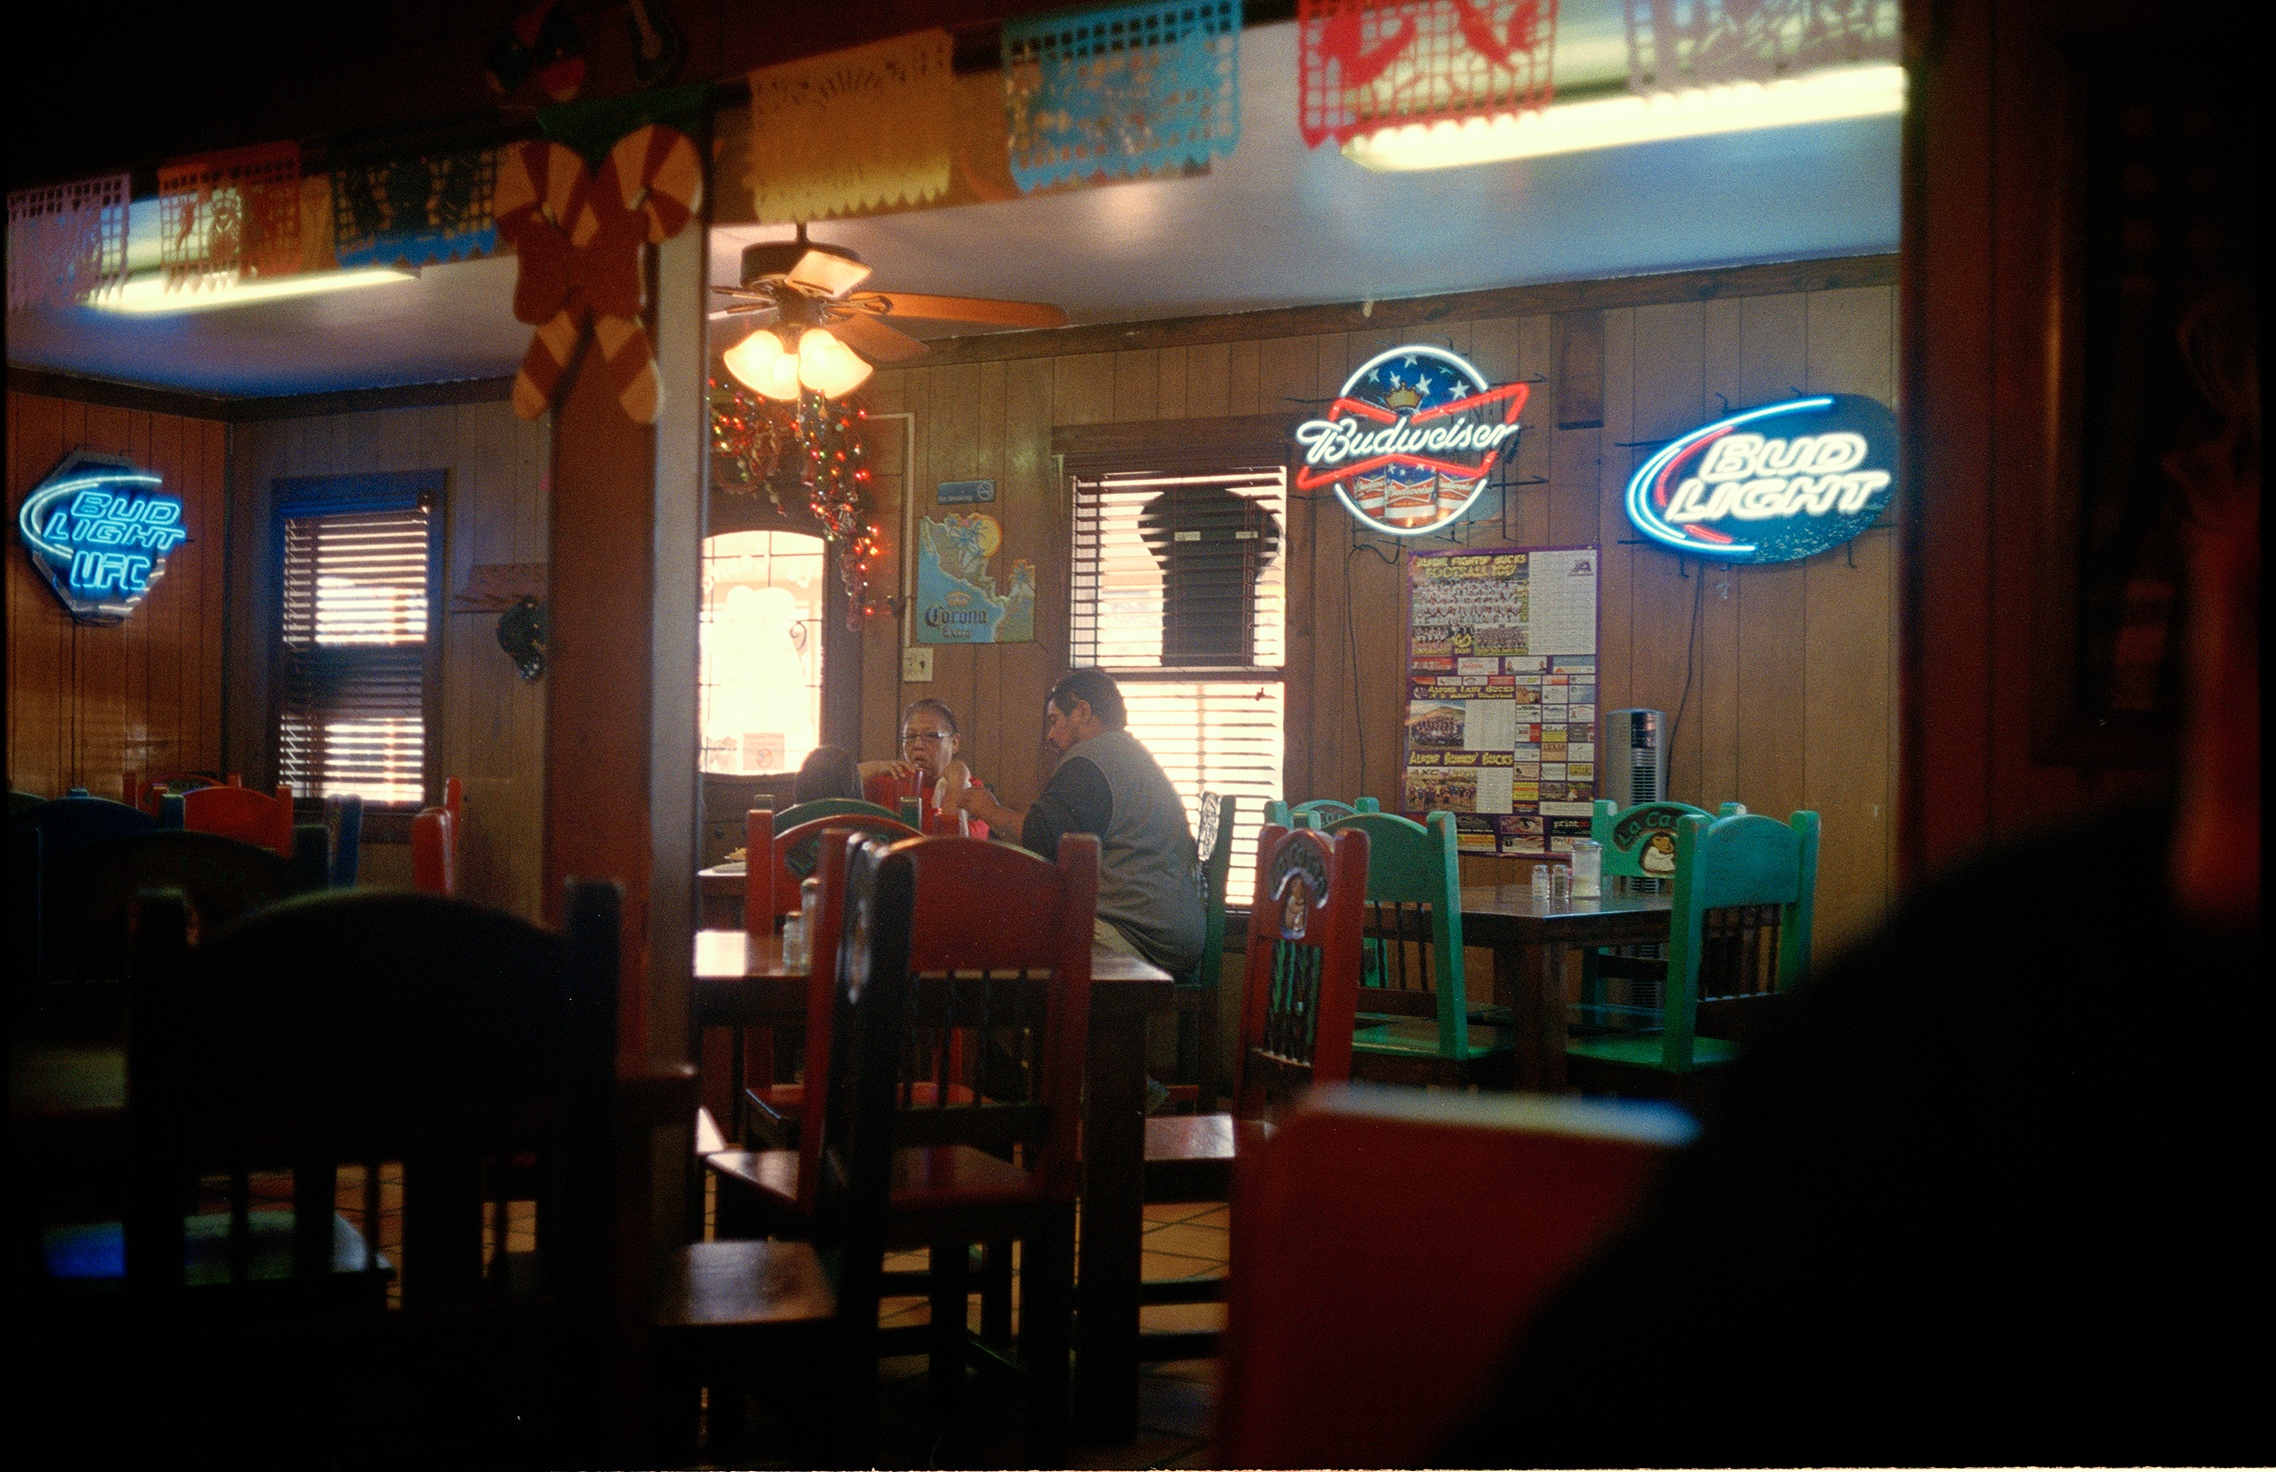 TEXAS_DEC_17 LOCATION SCOUT SCANS_9.jpg